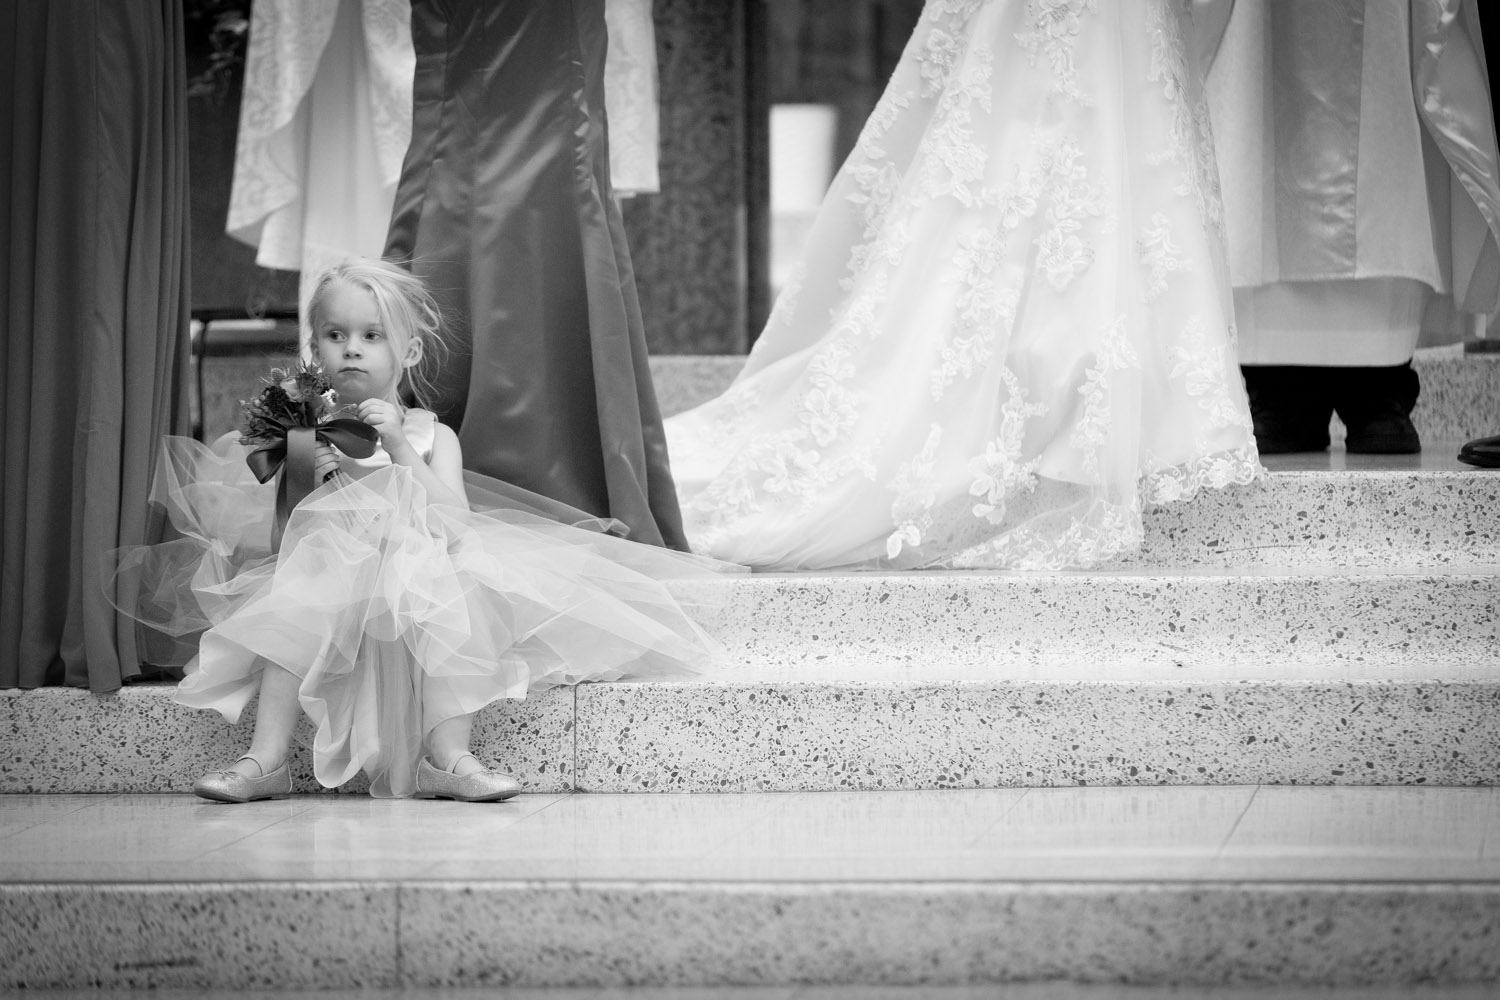 Being flexible and letting kids be kids (to a certain extent) is also important. Choose your battles. This little flower girl wanted to sit next to her momma during the ceremony. No sweat.